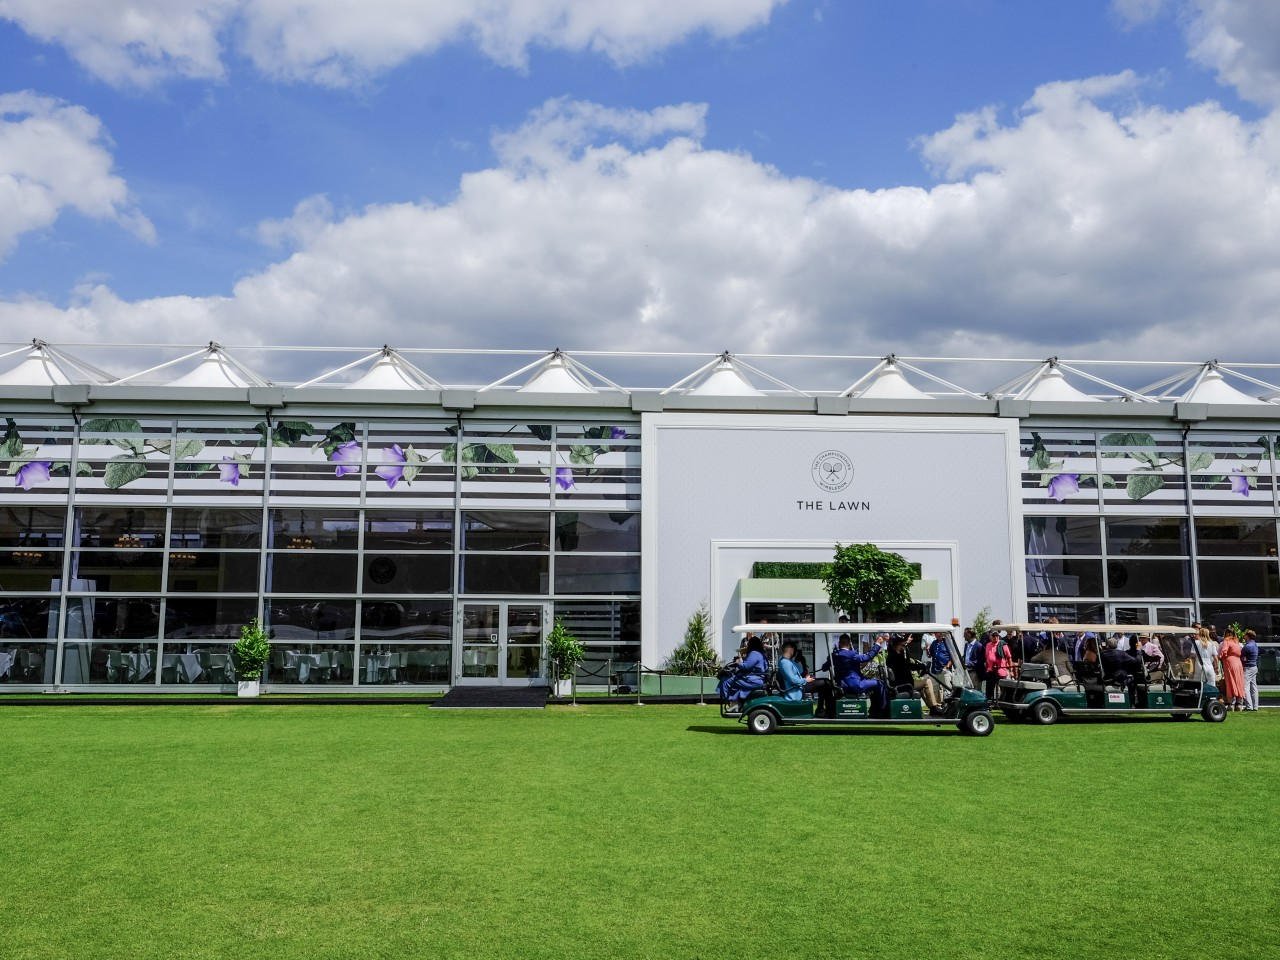 The Lawn - The Championships, Wimbledon